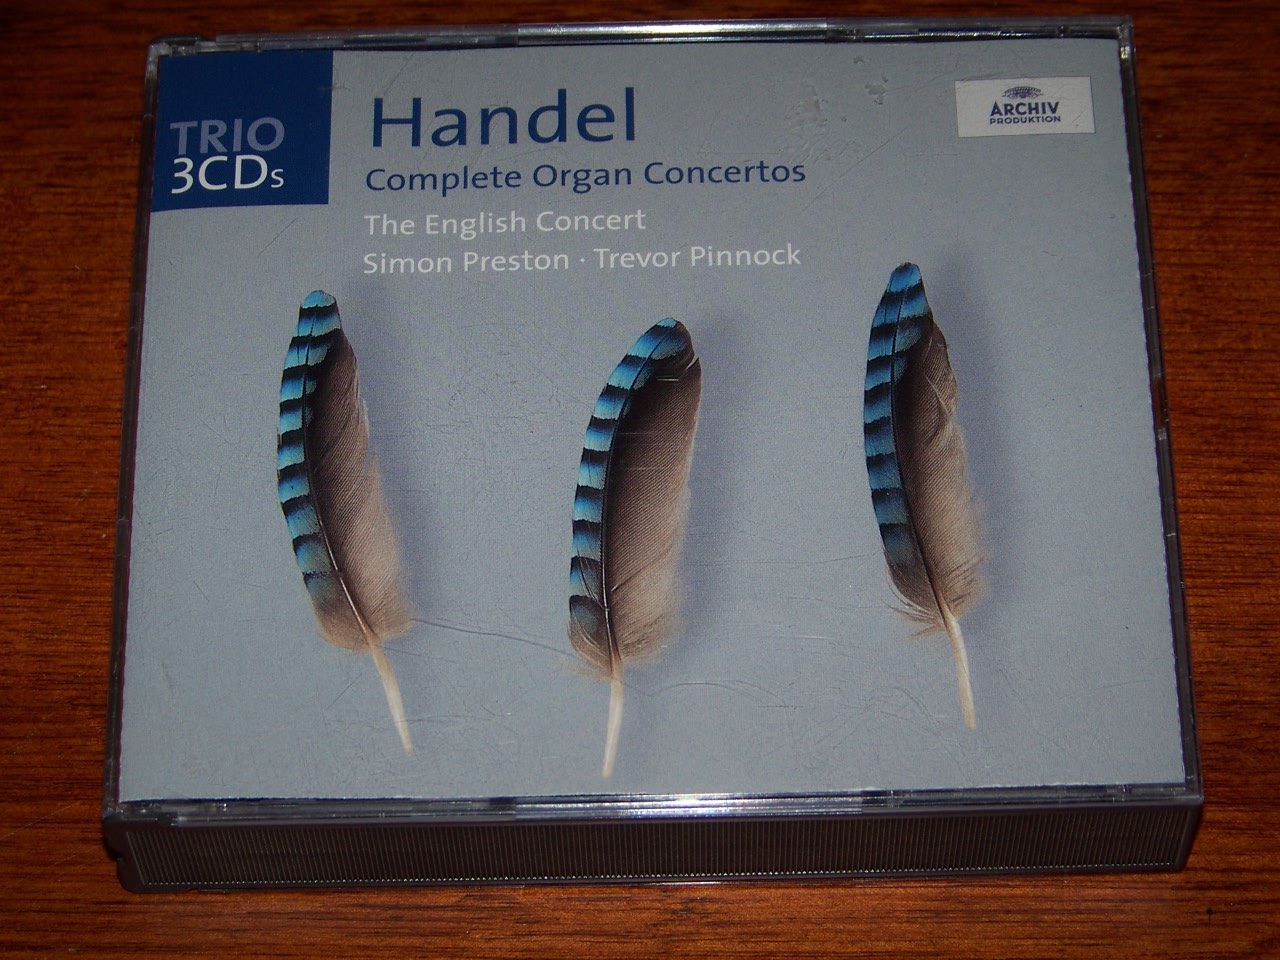 handel-Complete-Organ-Concertos-Simon-Preston-Trevor-Pinnock-As-NEW-3CD